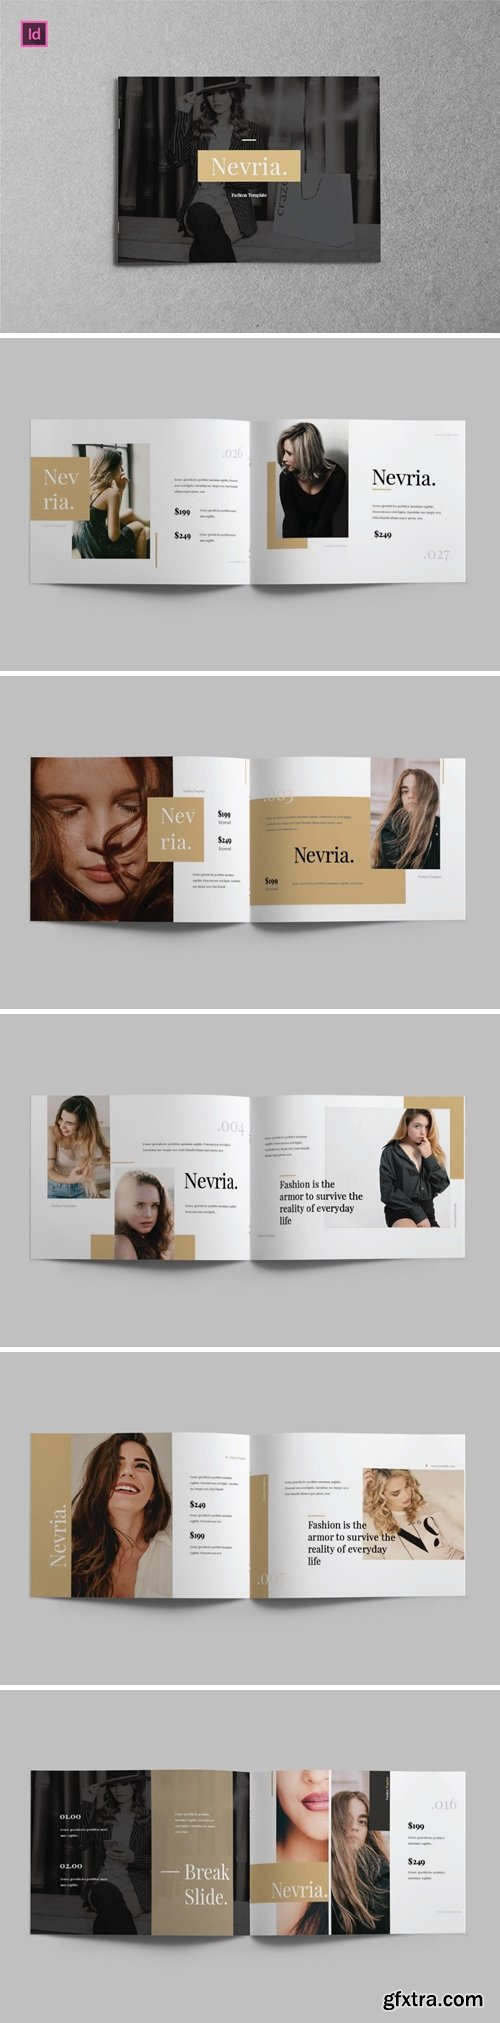 NEVRIA - A5 Landscape Lookbook template